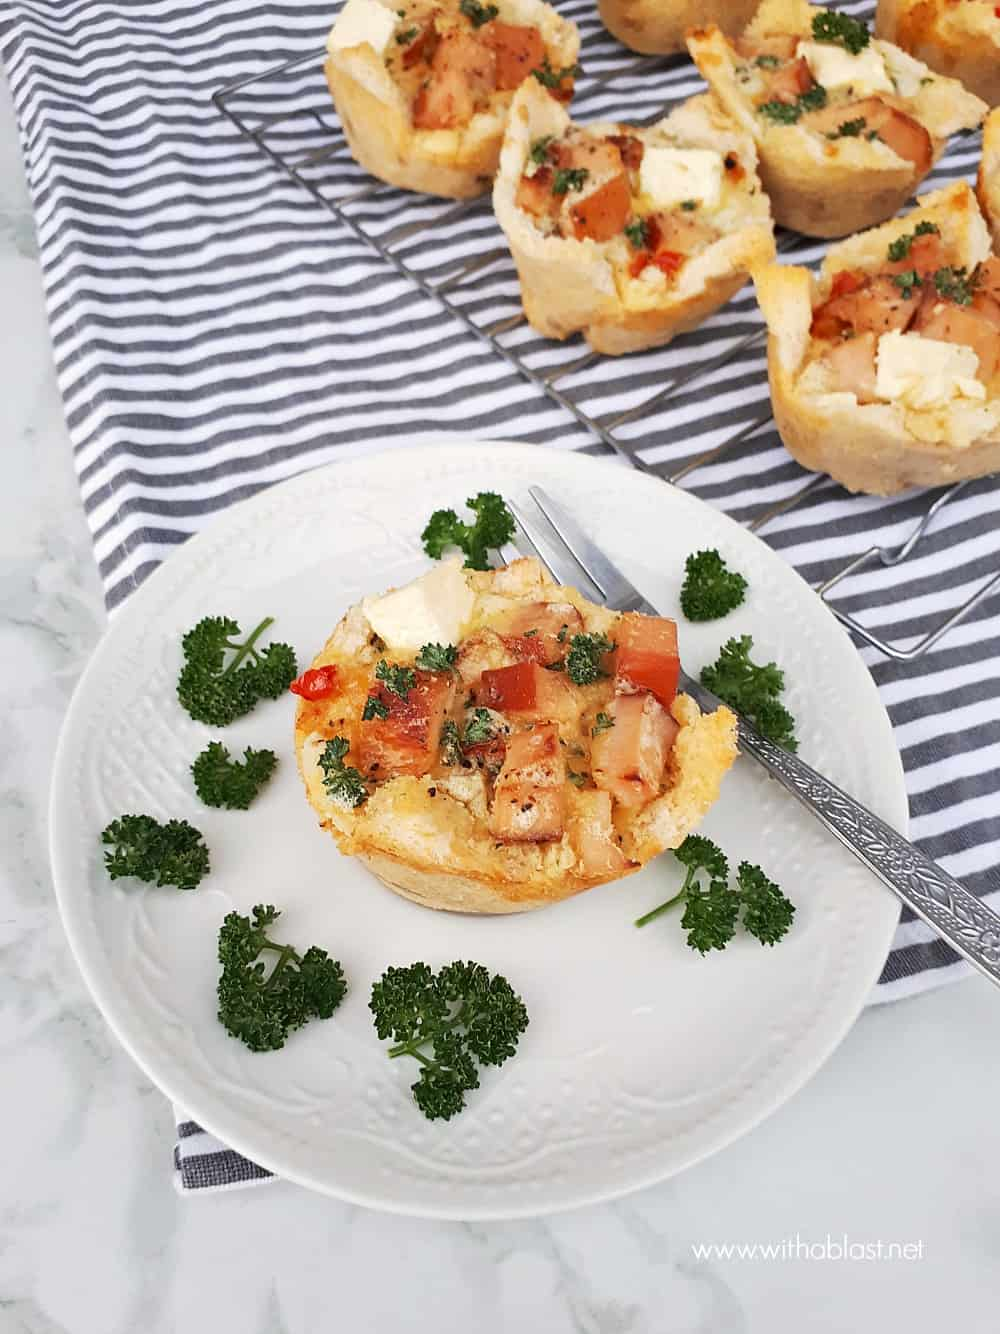 A very versatile recipe for Chicken and Creamy Garlic Bread Baskets - serve as a light dinner, snack or as an appetizer. Perfect to use up leftover Chicken and Bread.